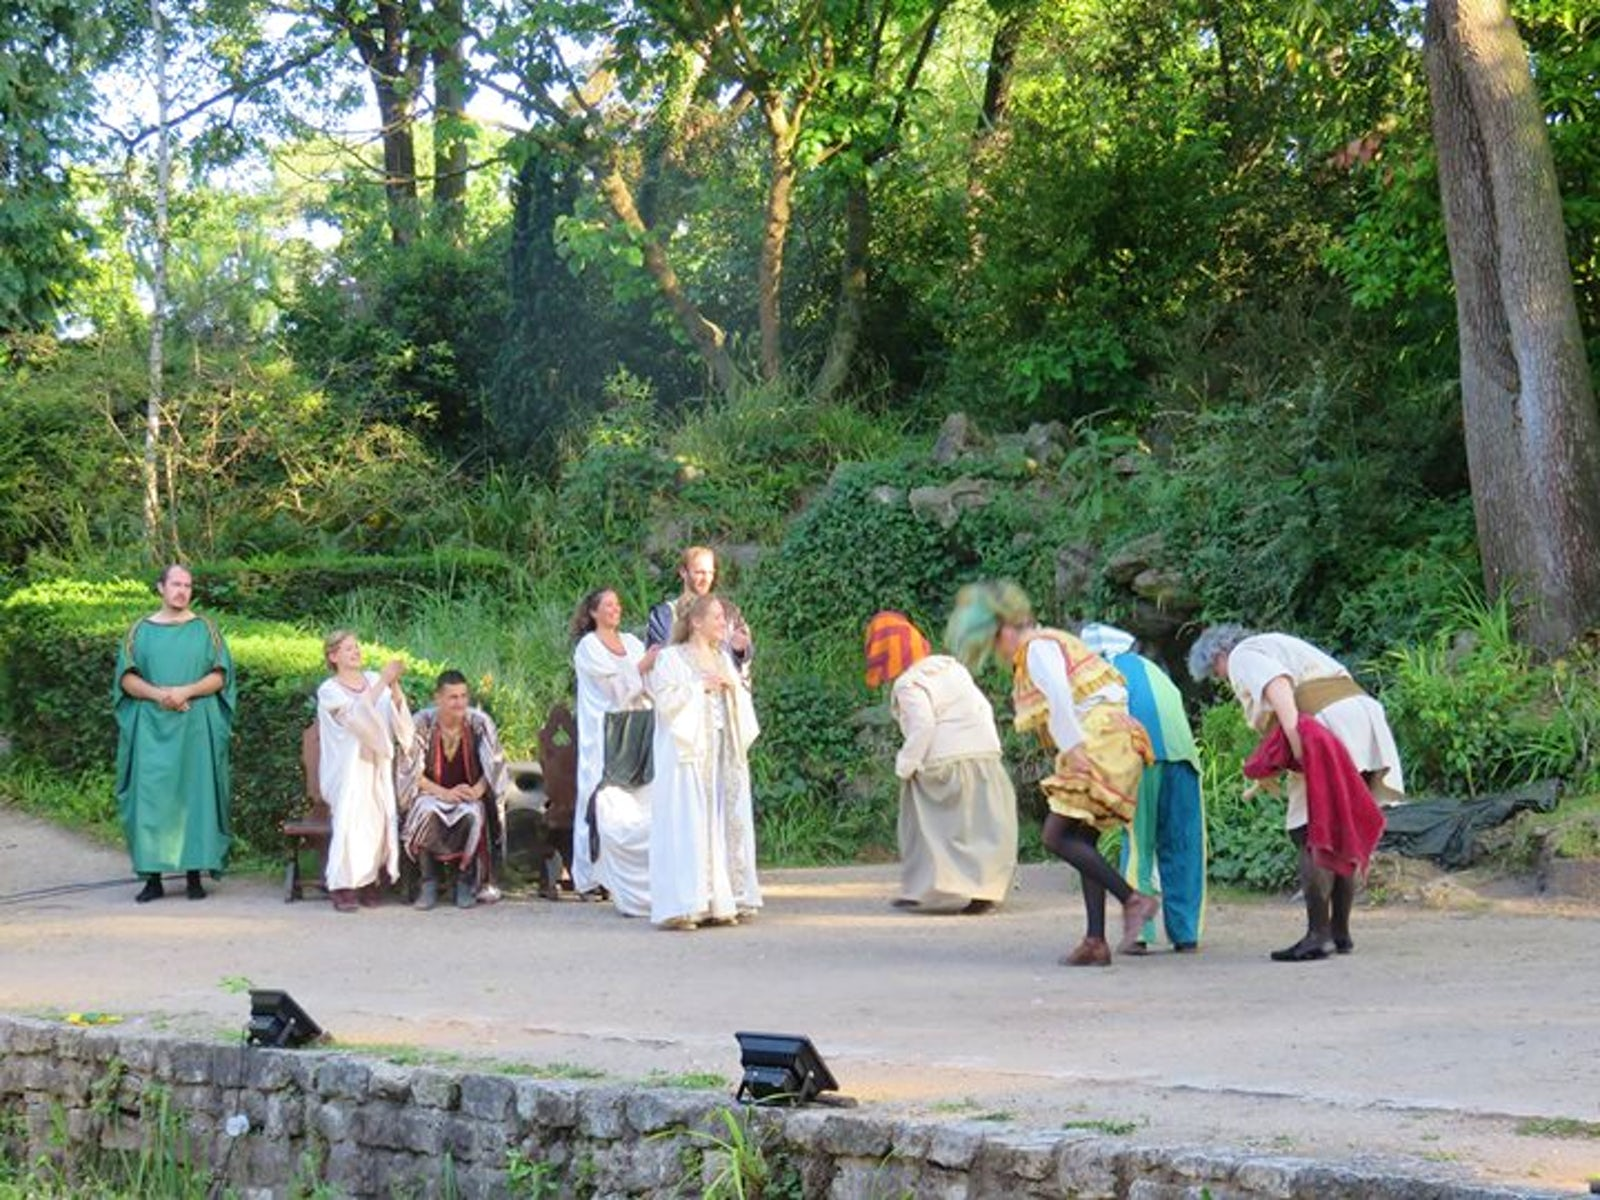 Awesome theatre de verdure du jardin pictures awesome - Theatre de verdure du jardin shakespeare pre catelan ...